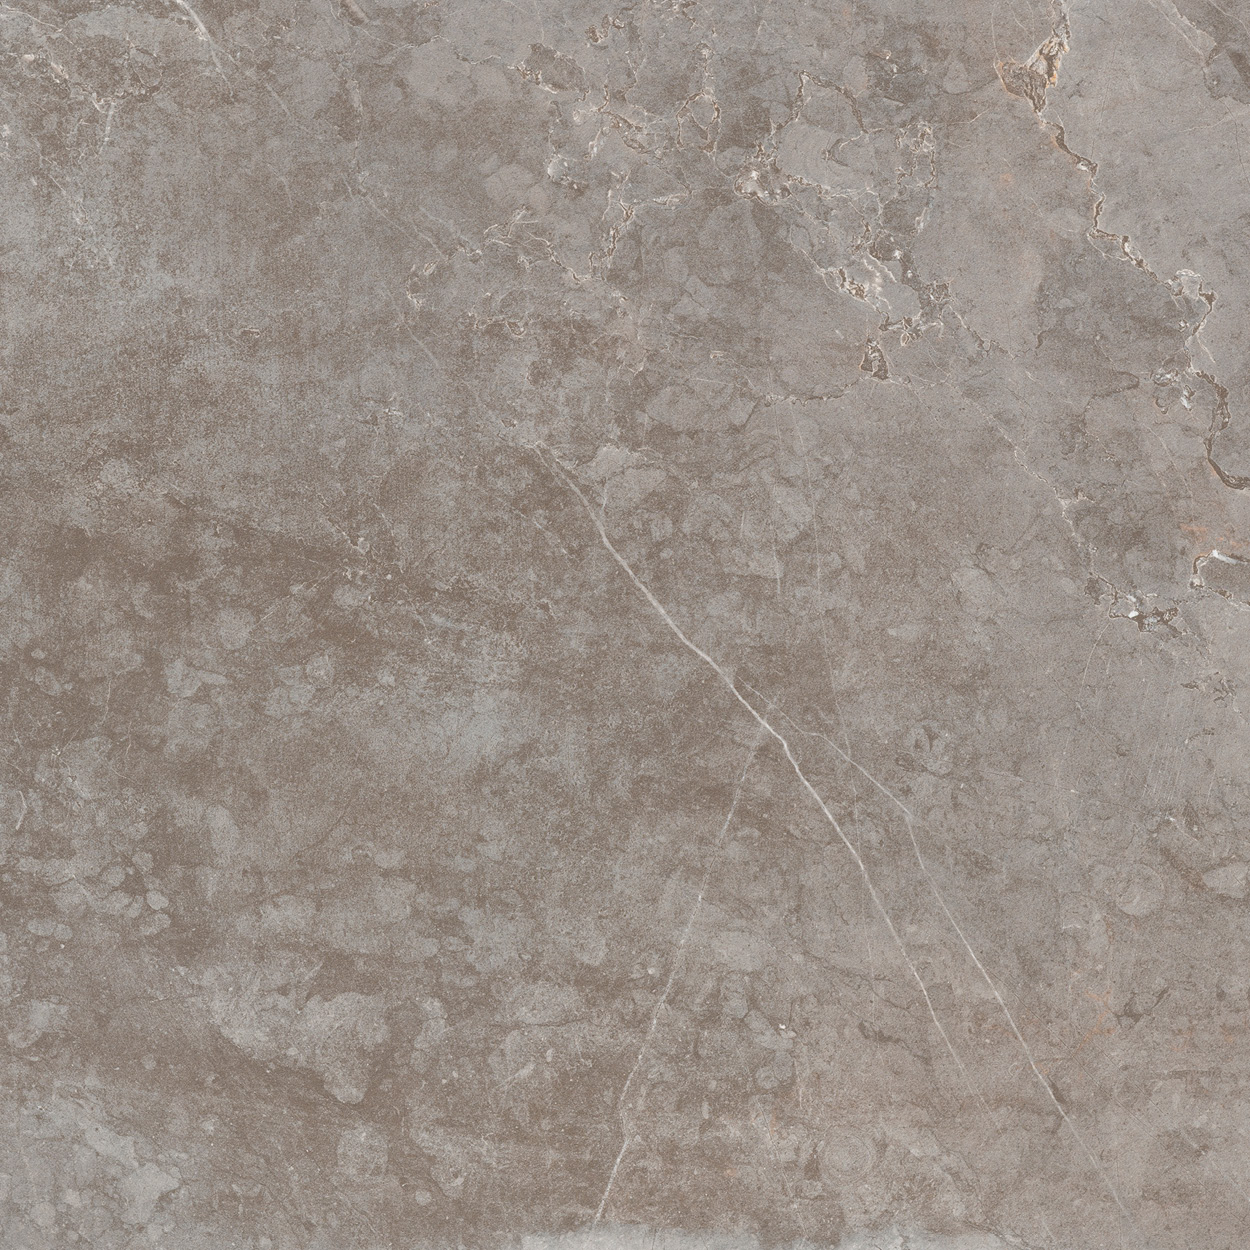 12 x 24 Evo Stone Natural Honed finished Rectified Porcelain Tile